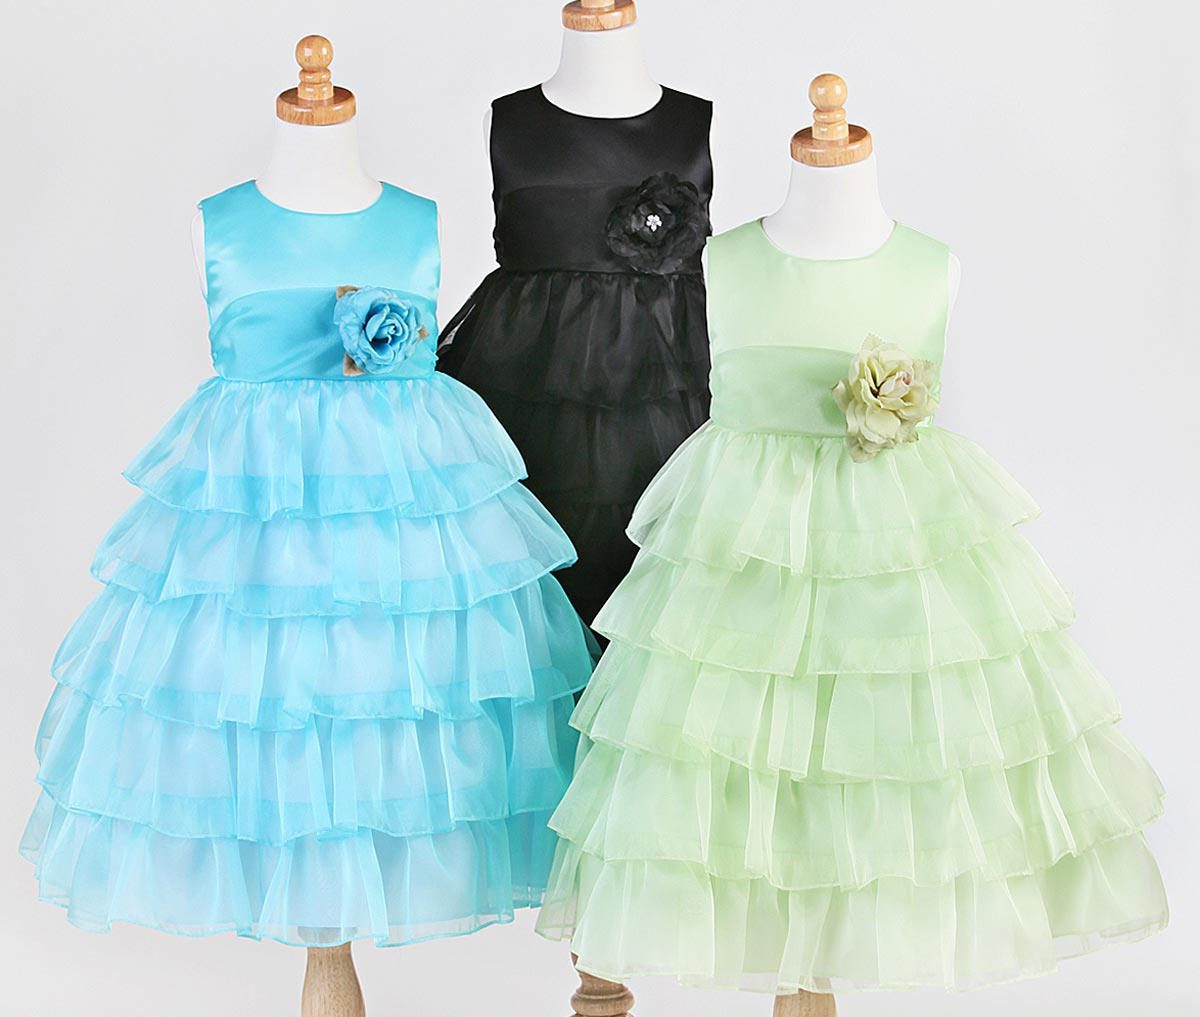 Dorable Baby Party Frocks Dress Gift - All Wedding Dresses ...